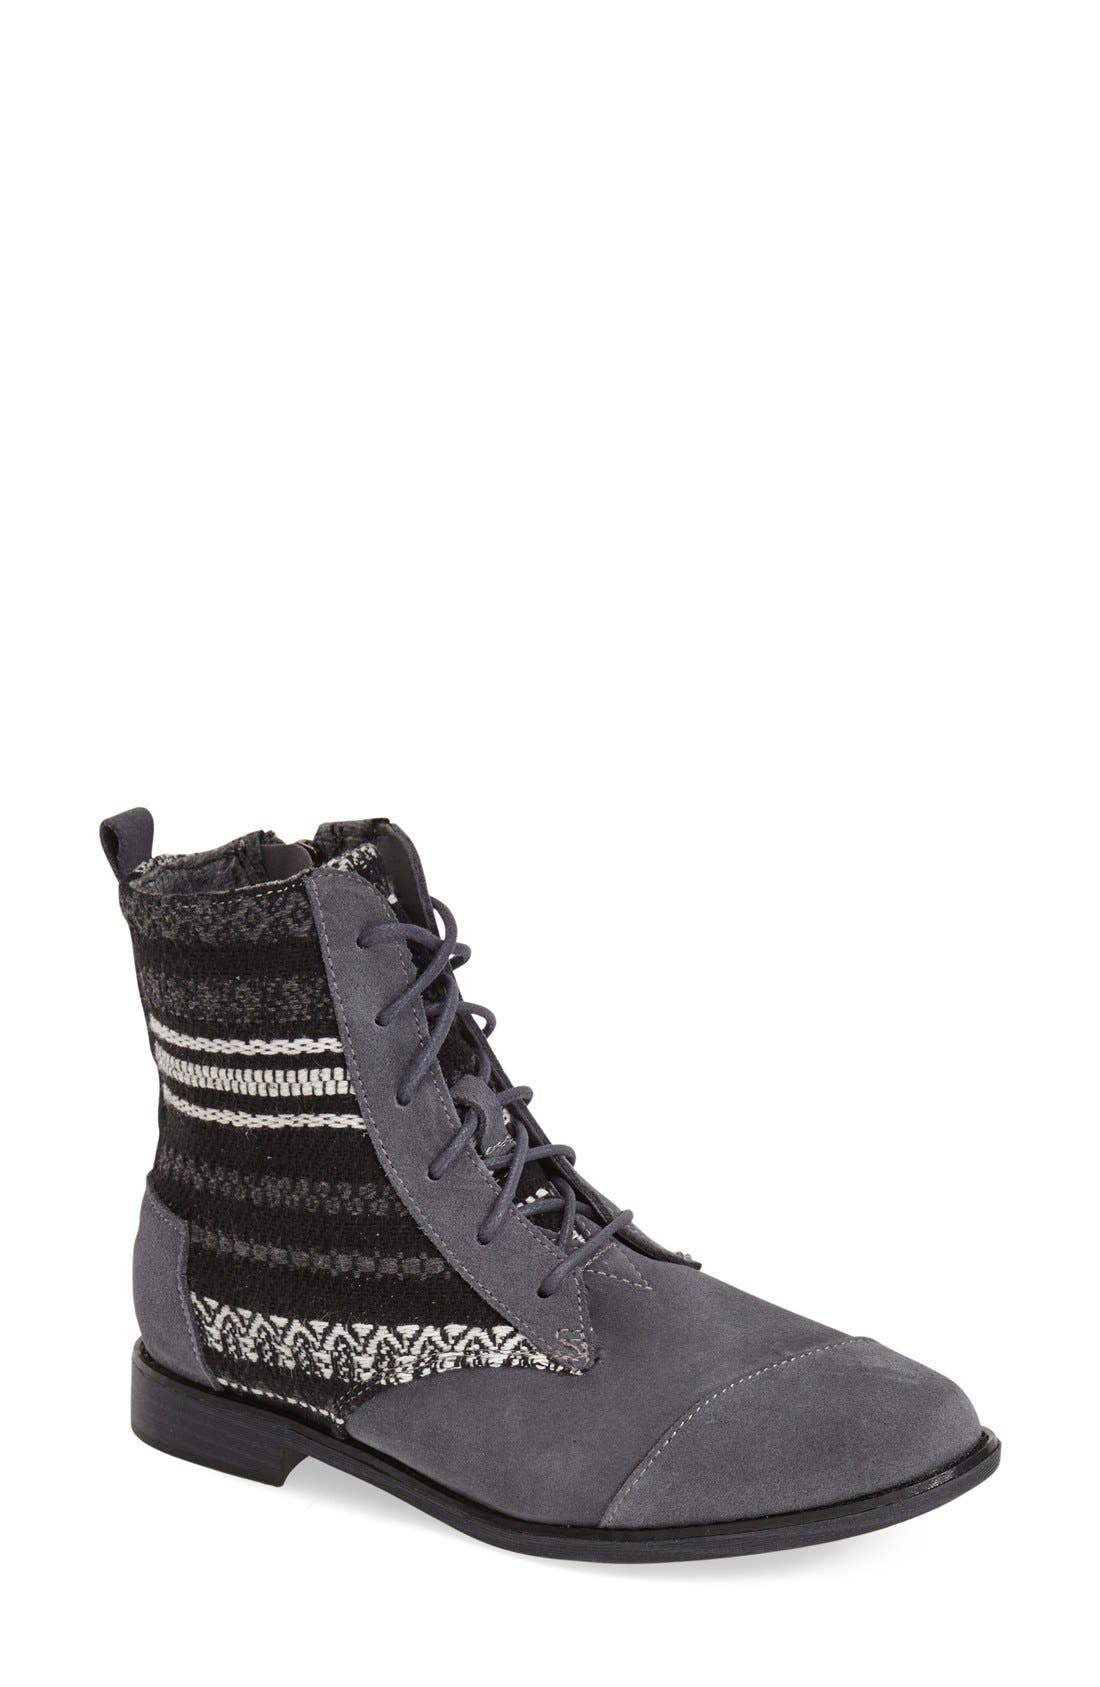 Main Image - TOMS 'Alpa' Water Resistant Suede Boot (Women)